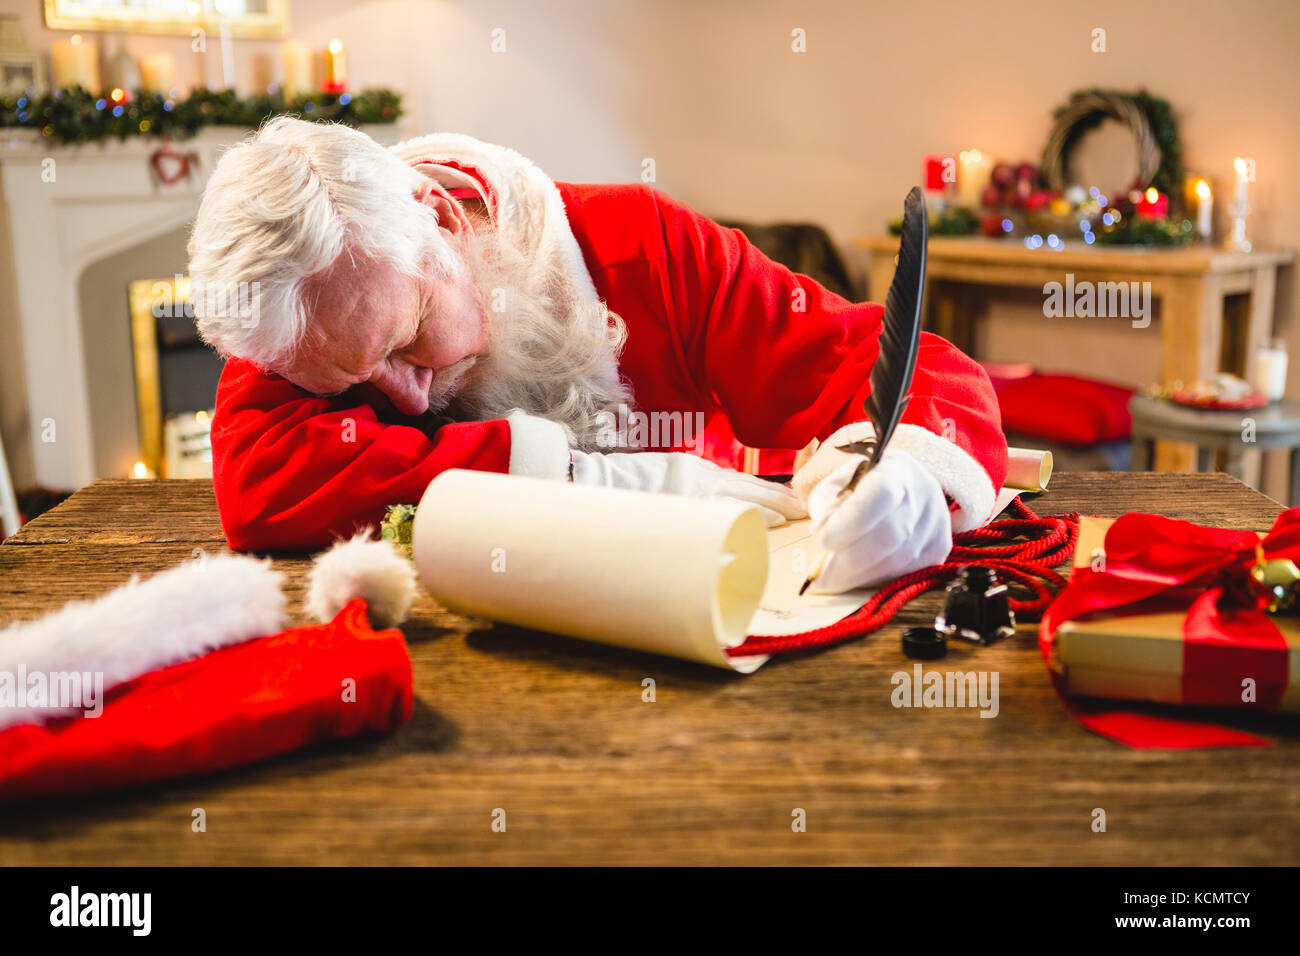 Santa claus sleeping at table while writing a letter with a quill during christmas time - Stock Image